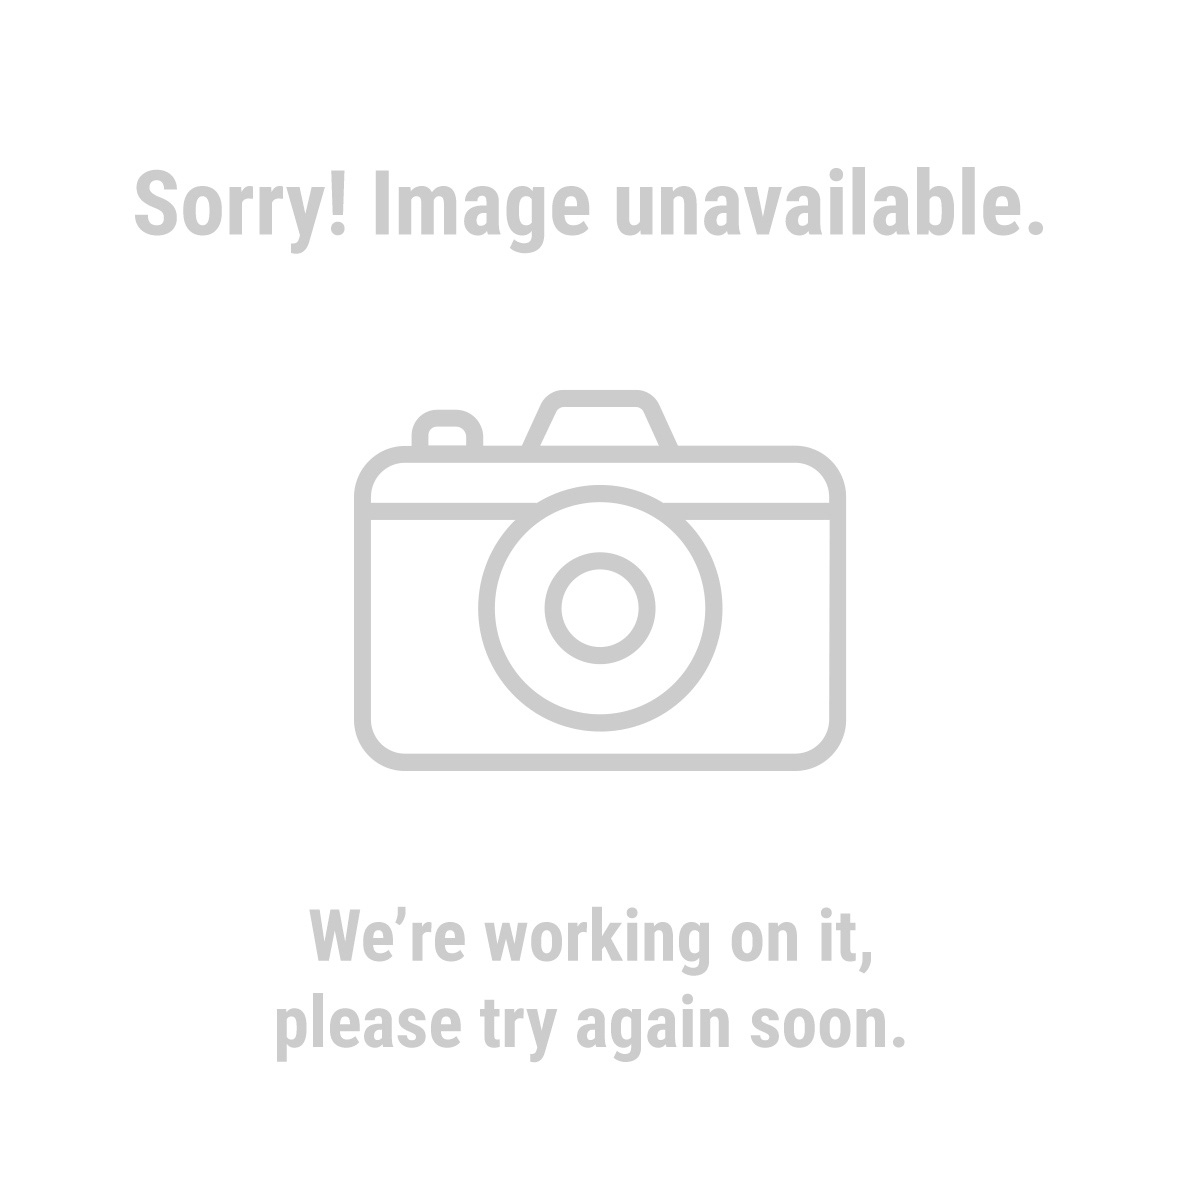 Haul-Master 34708 2 Ton Lifting Sling